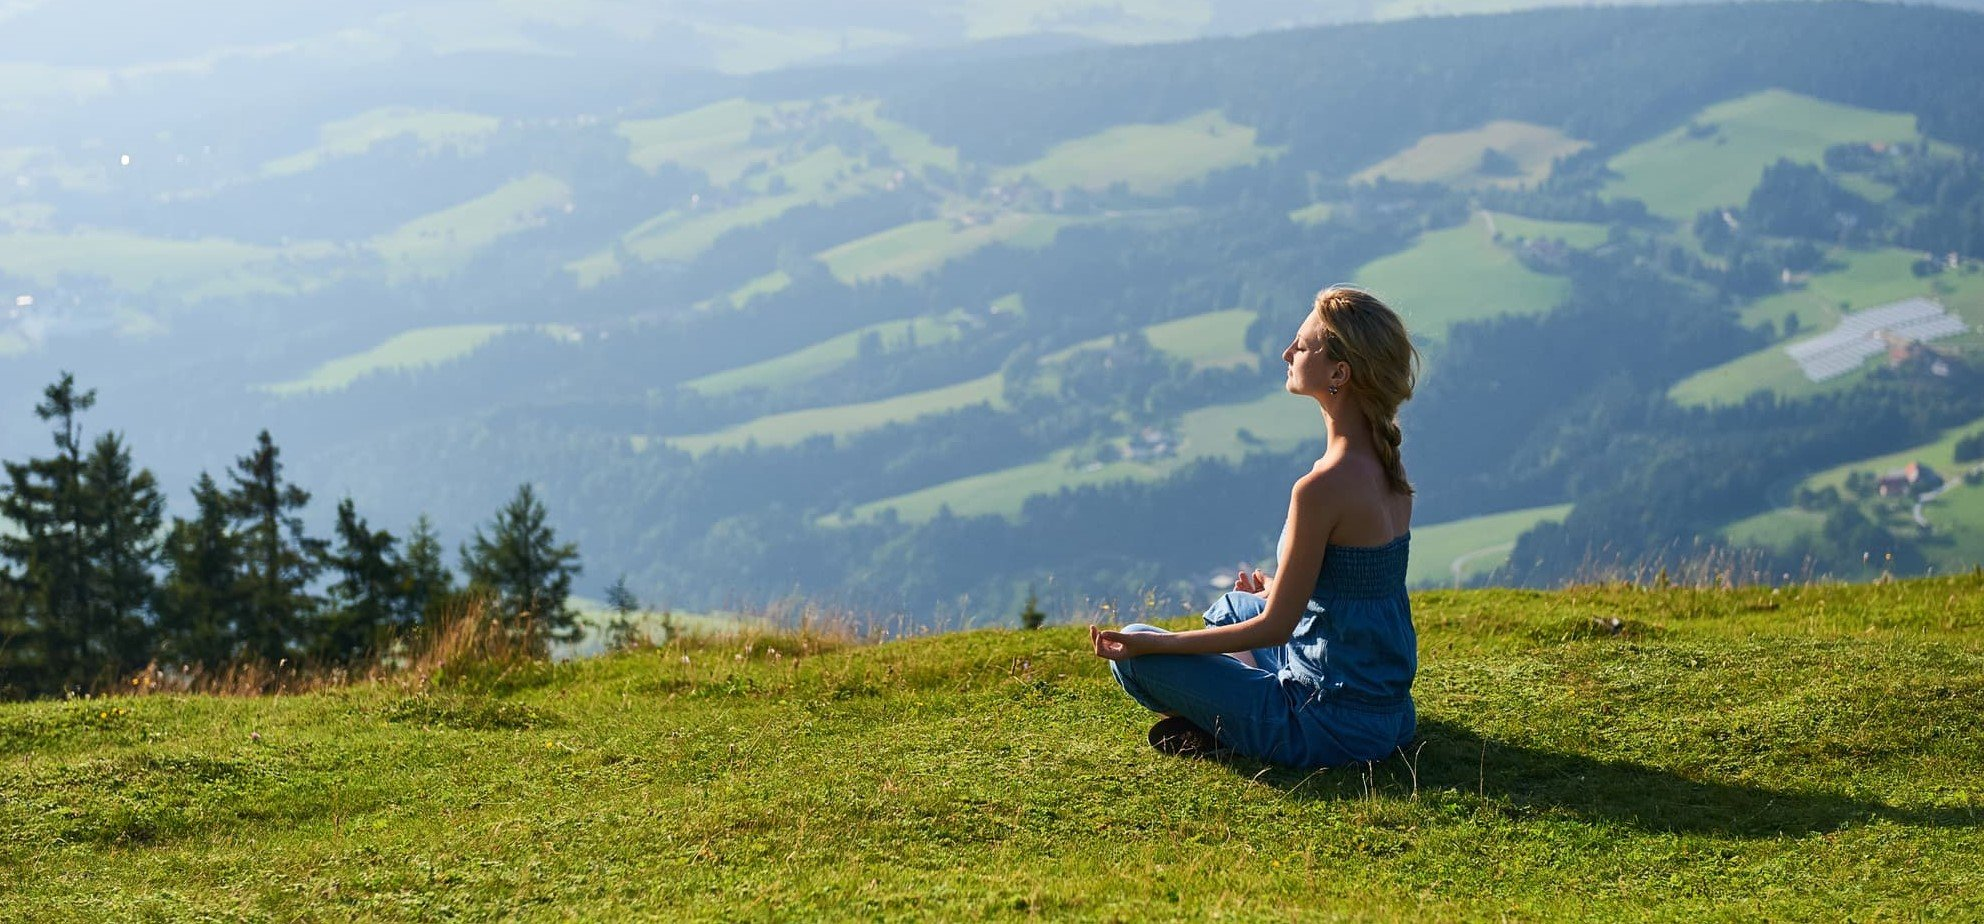 Health and Wellness: Mindfulness Resources - HealthChampion